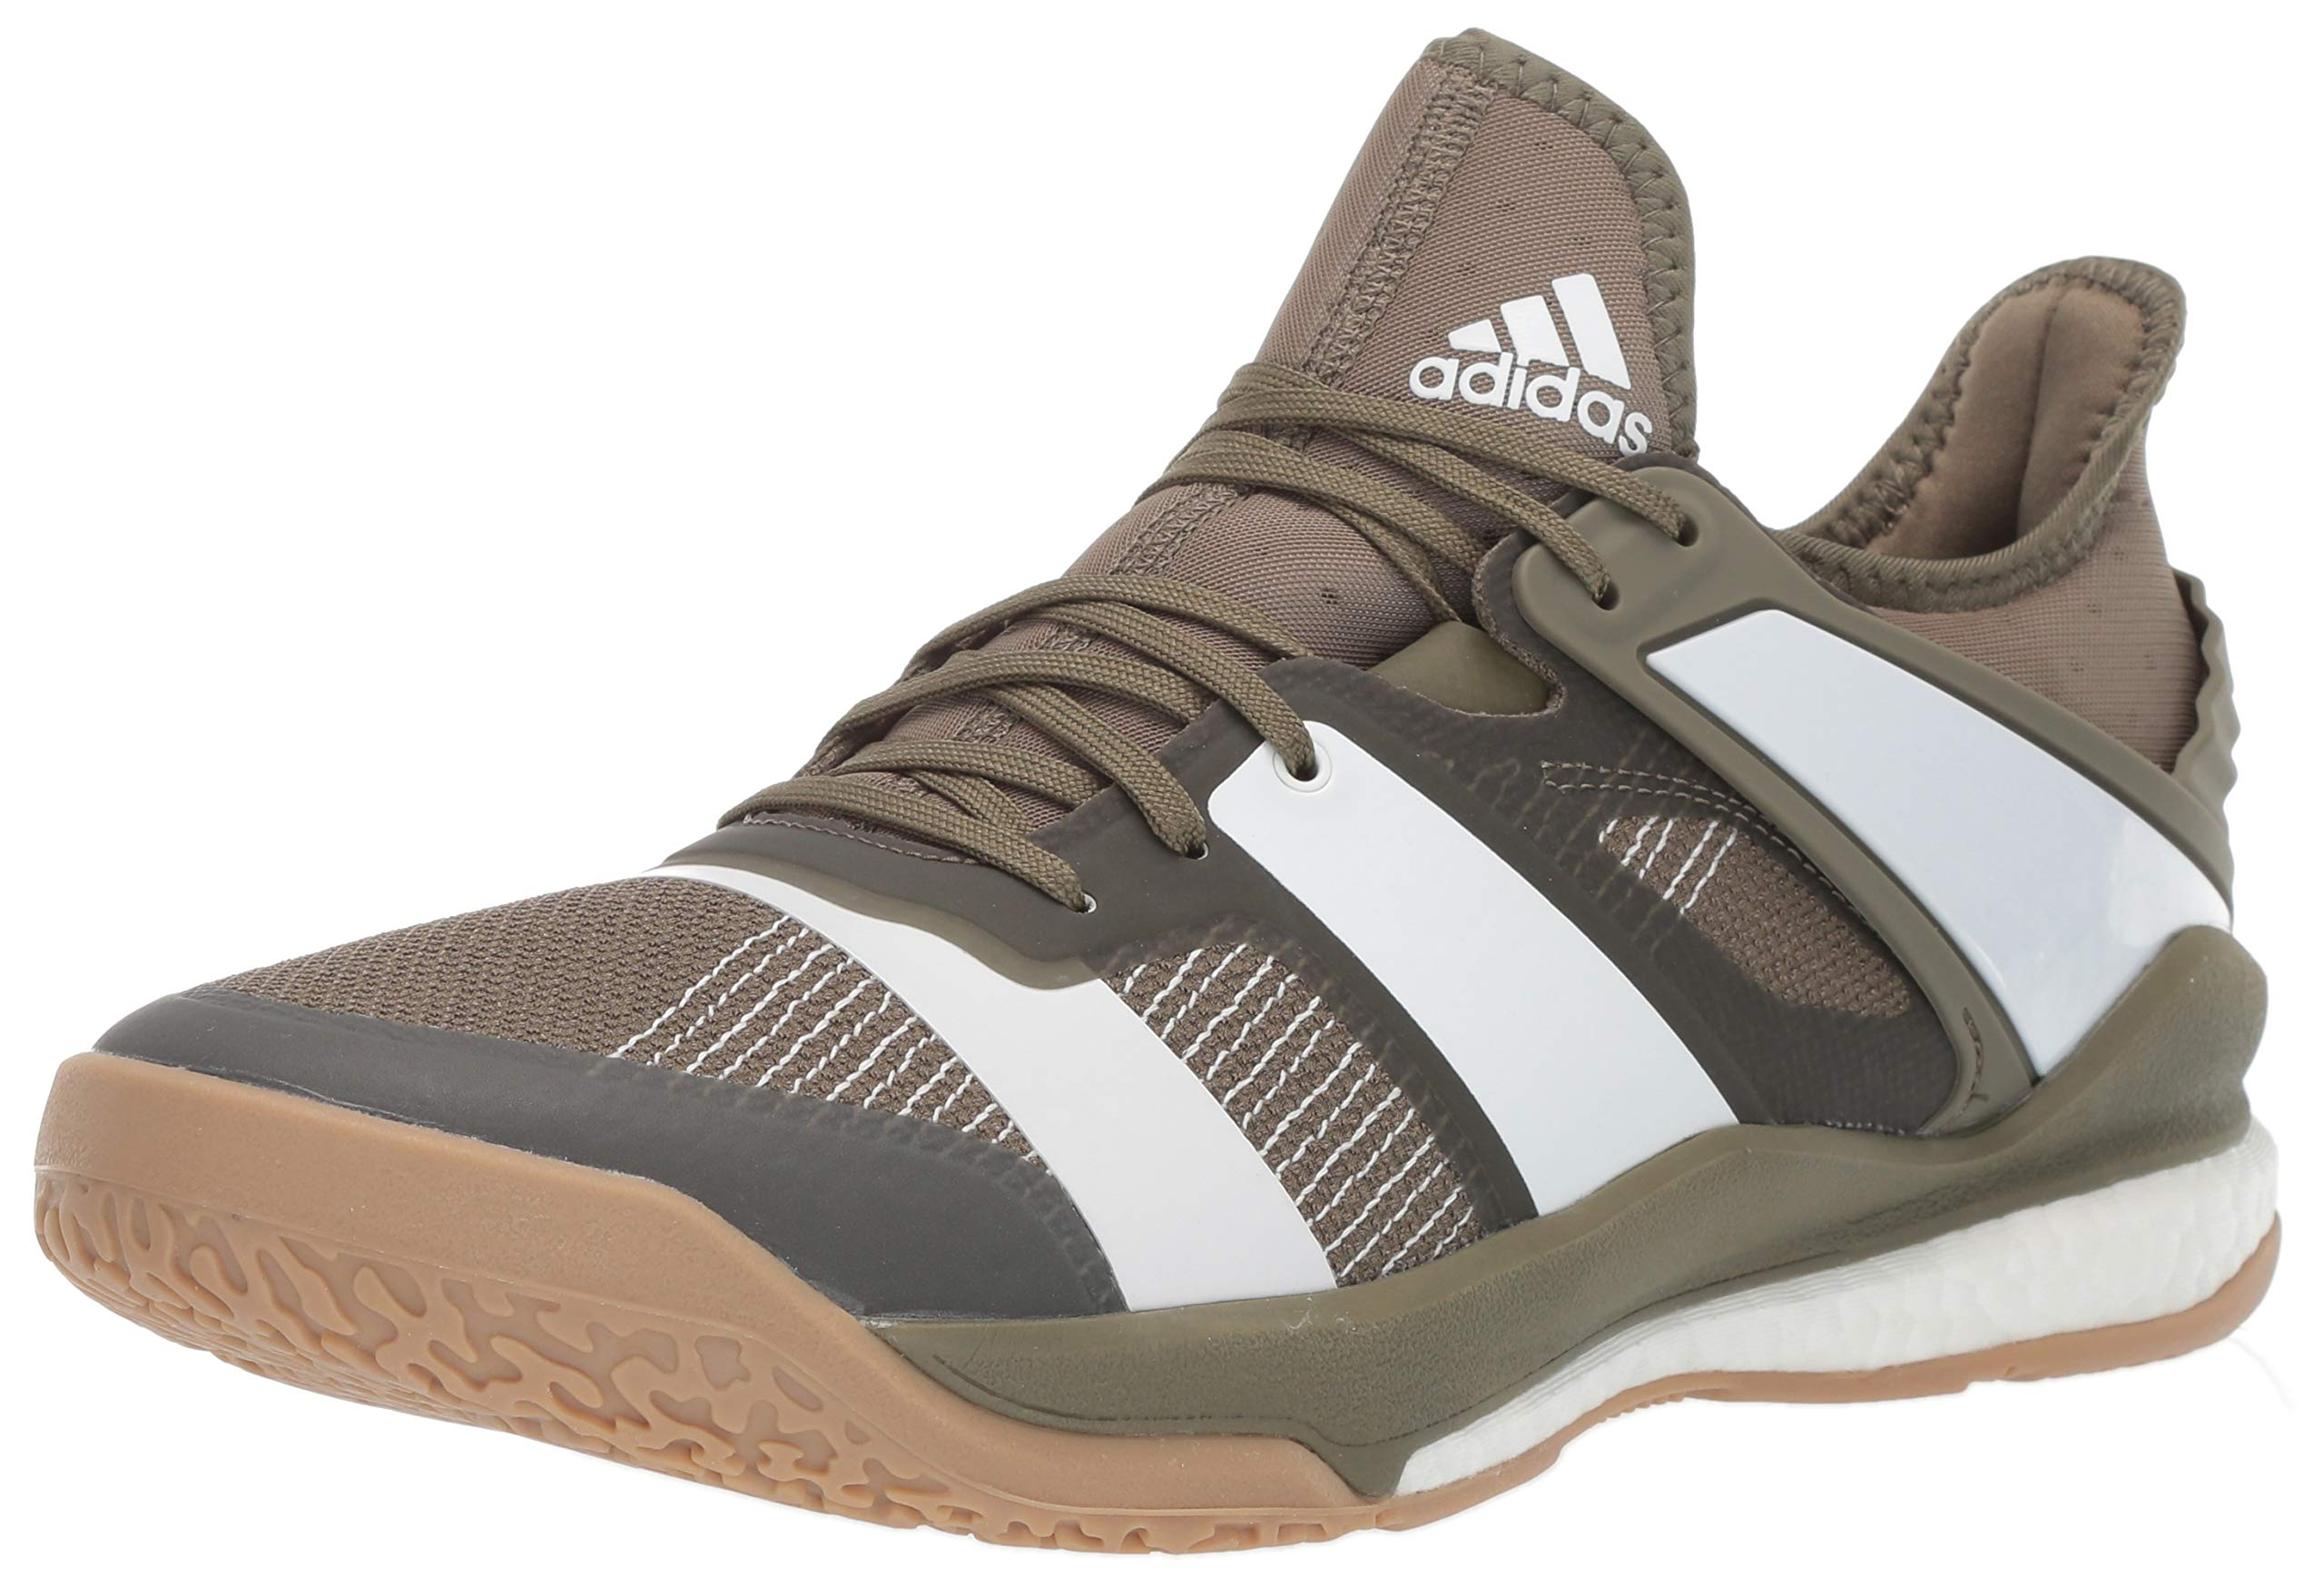 adidas Men's Stabil X, raw Khaki/White/Gum 8.5 M US